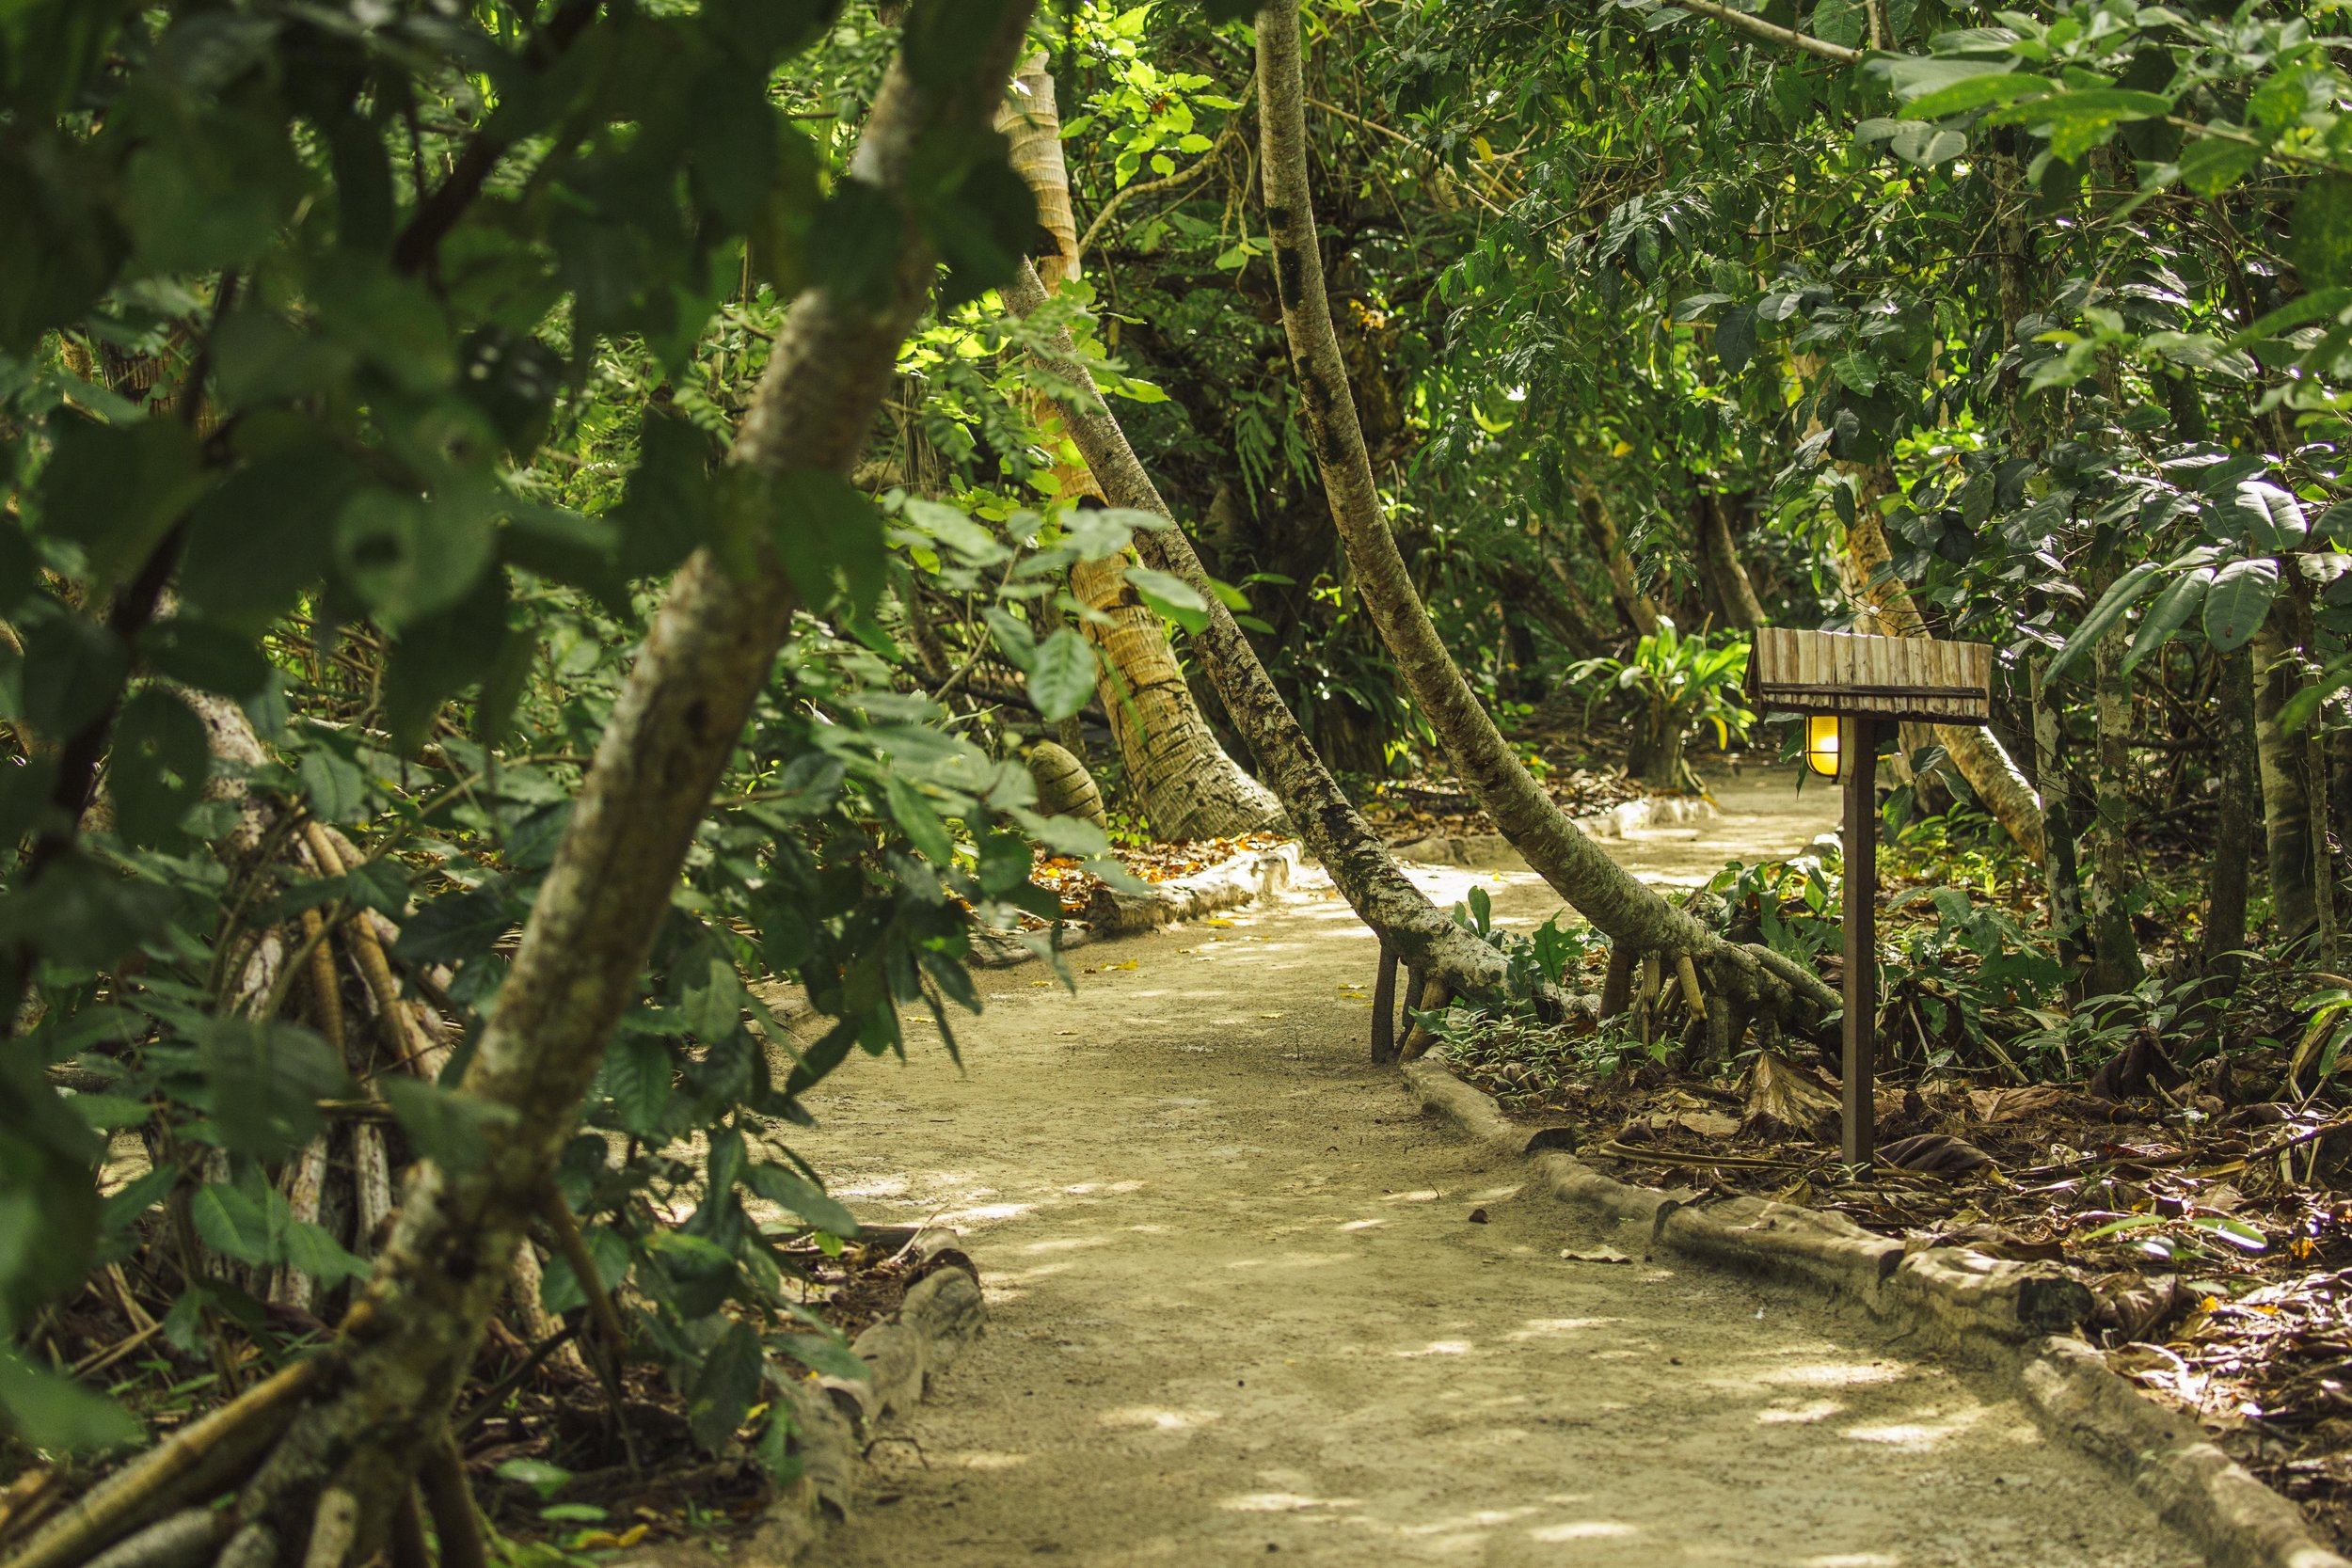 pathway inside the resort - Out of respect for sustainability and conservation, the habitat within which Kri Eco was built was minimally altered, and trees and plants continue to encroach on the pathway, contributing to the feeling that you have arrived in a tropical paradise.